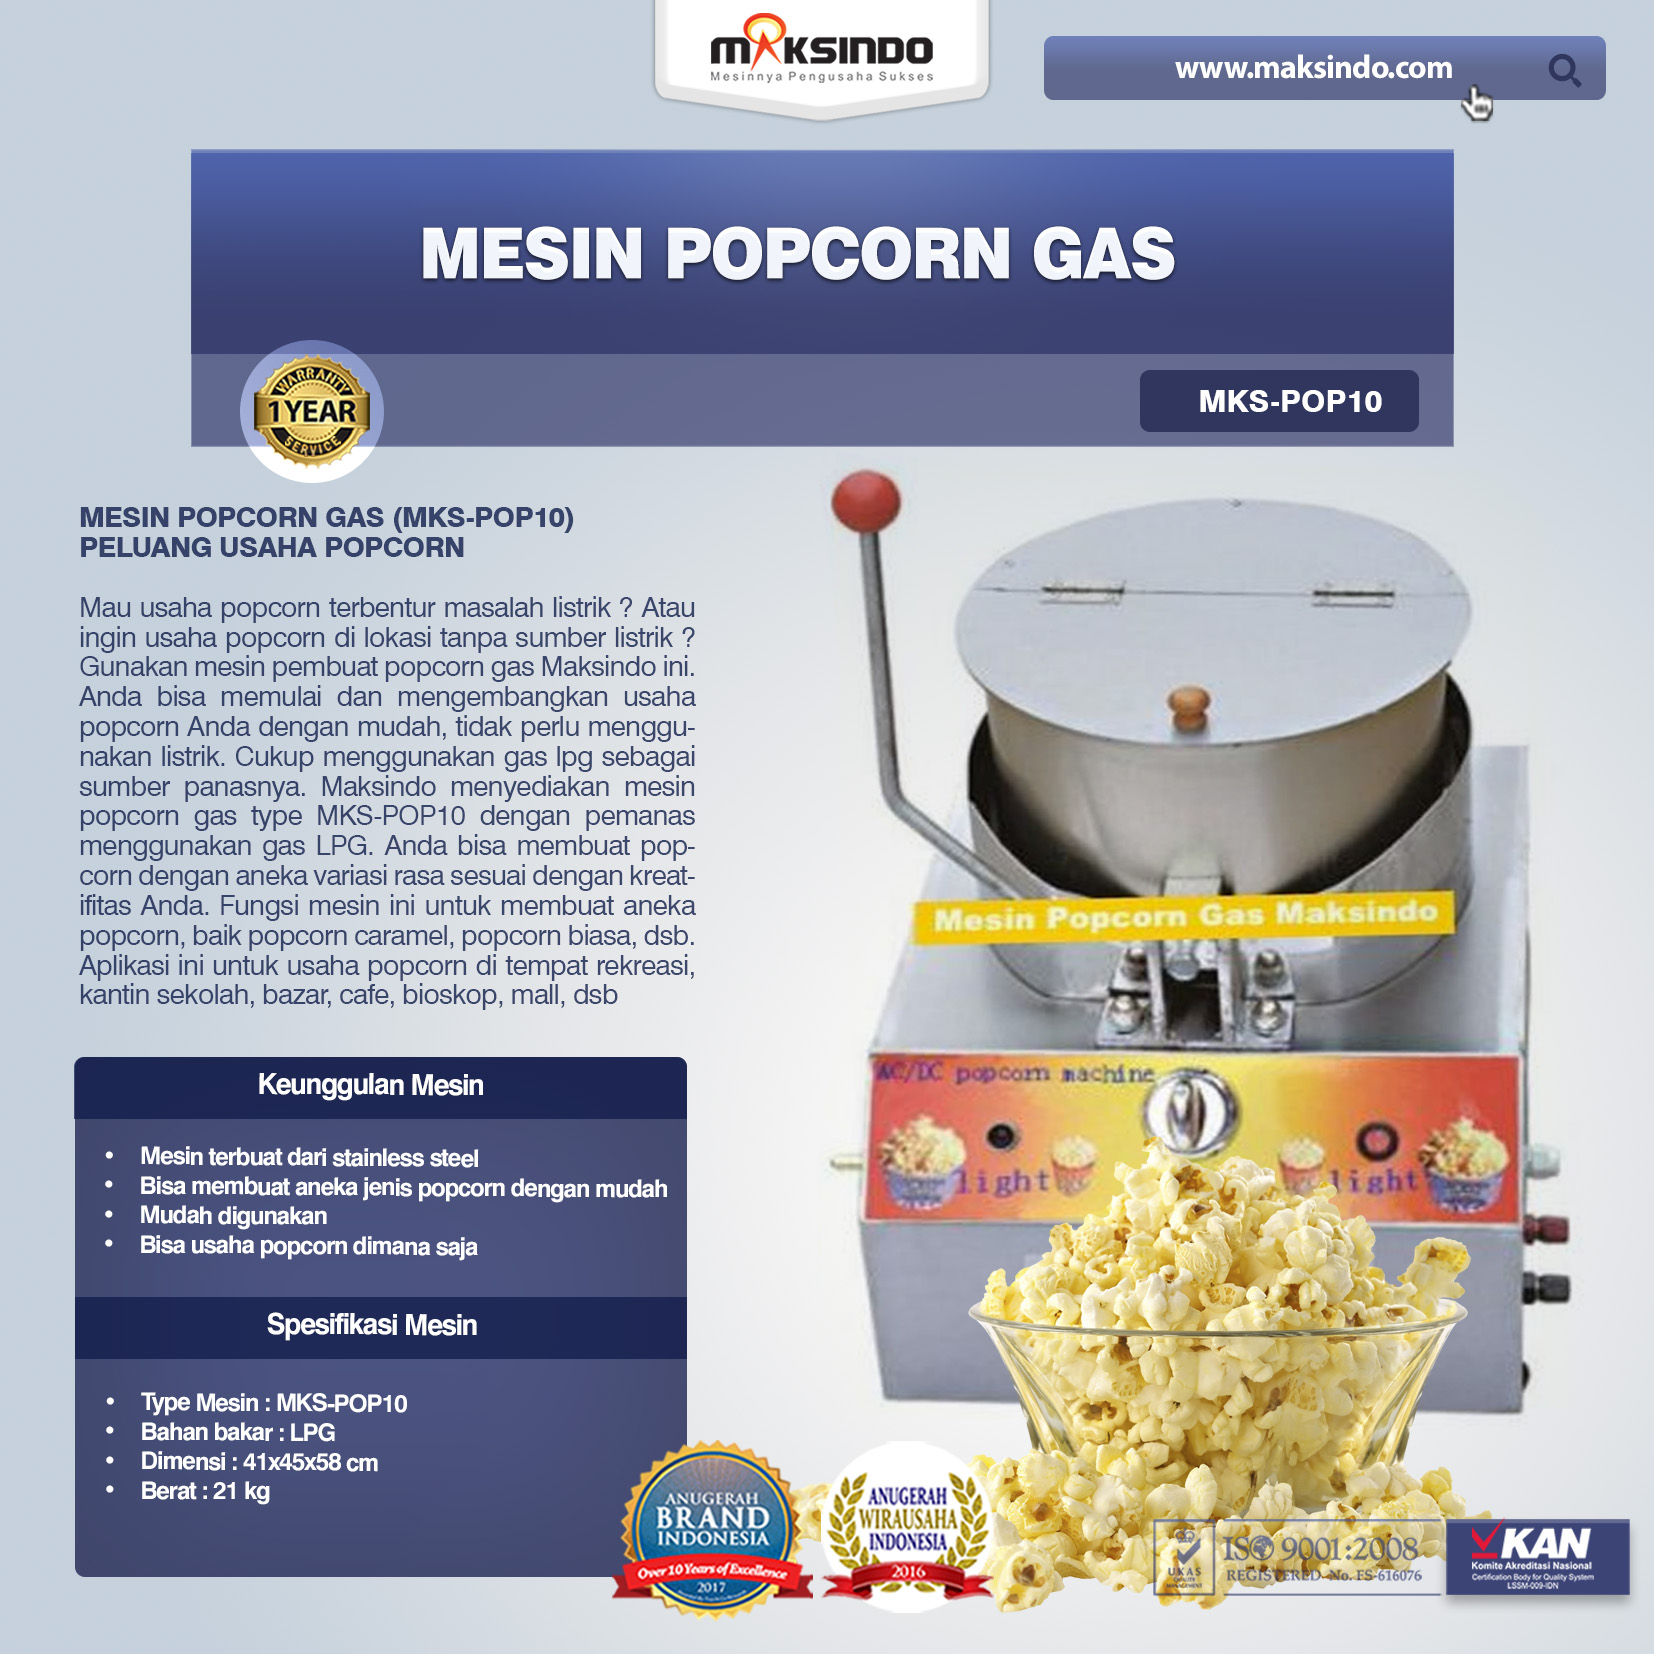 Mesin Popcorn Gas MKS-POP10